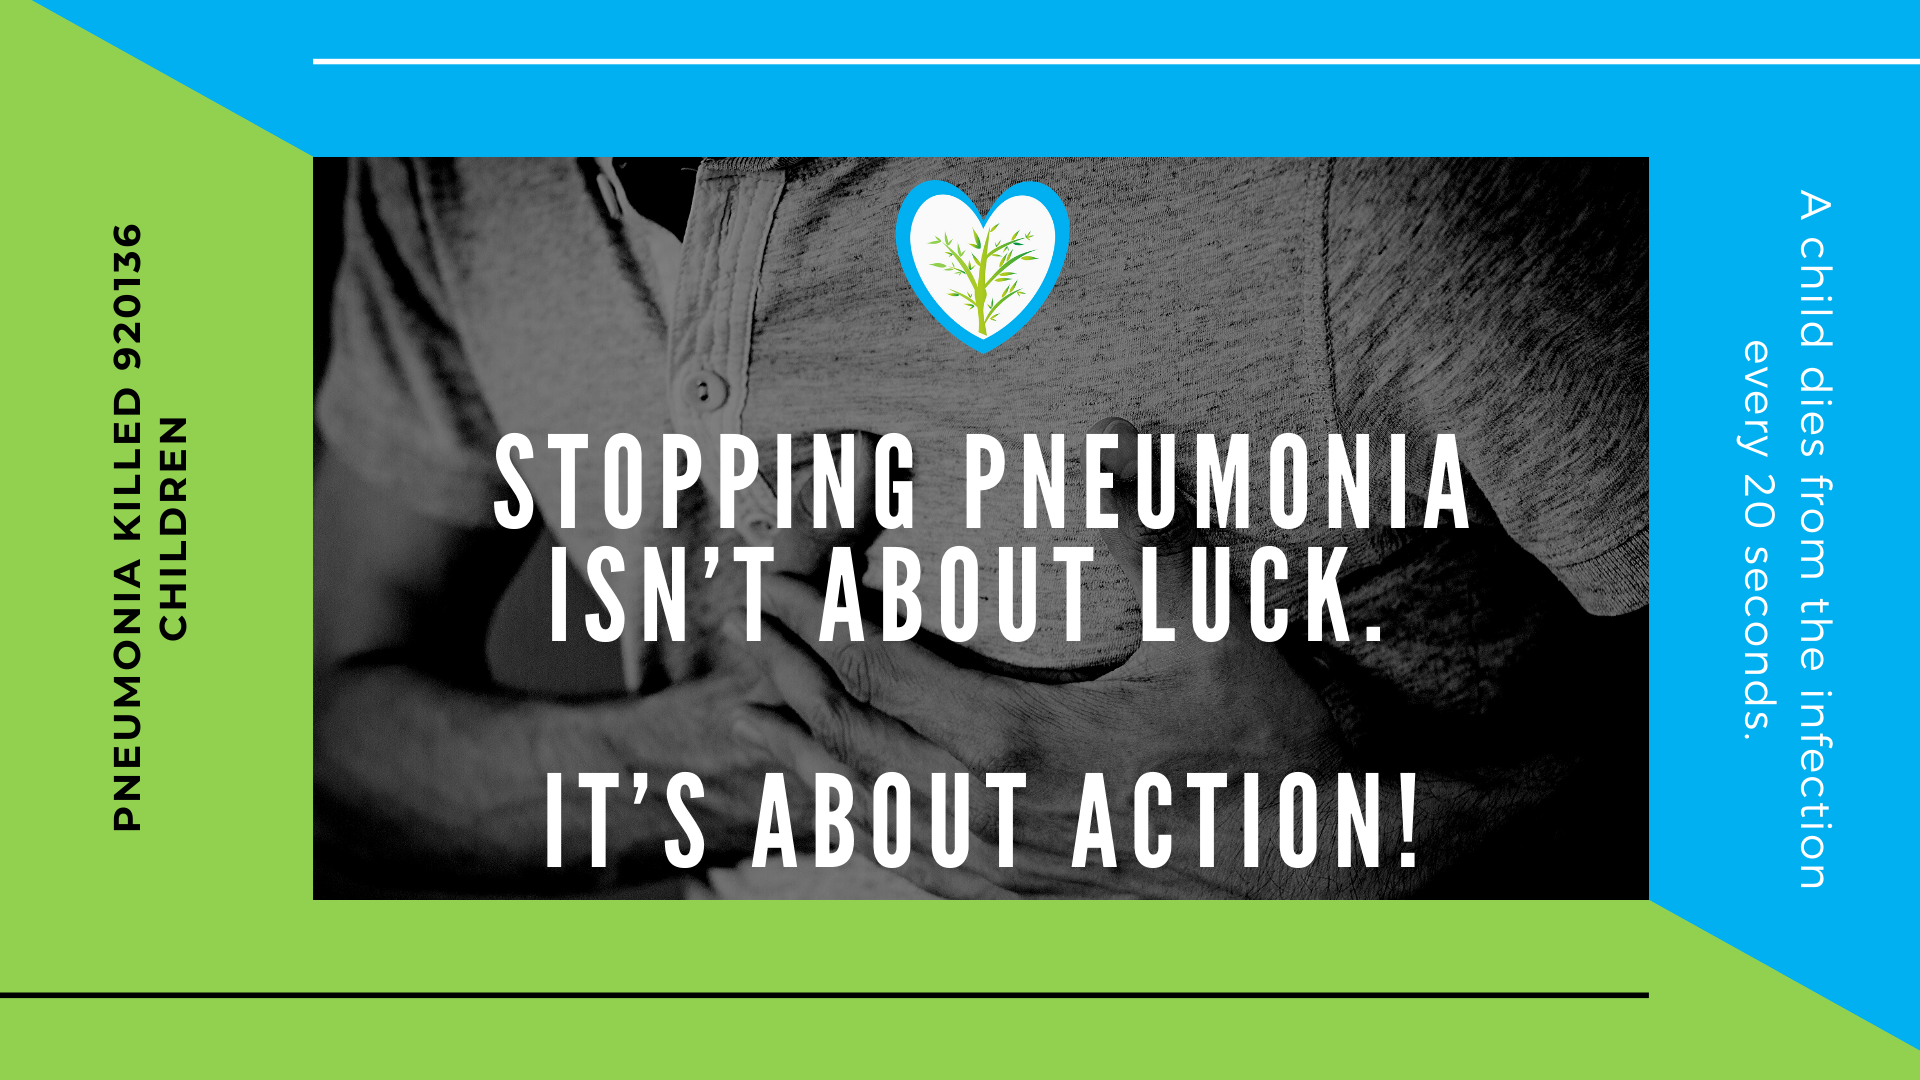 Stopping pneumonia isn't about luck. It's about action!